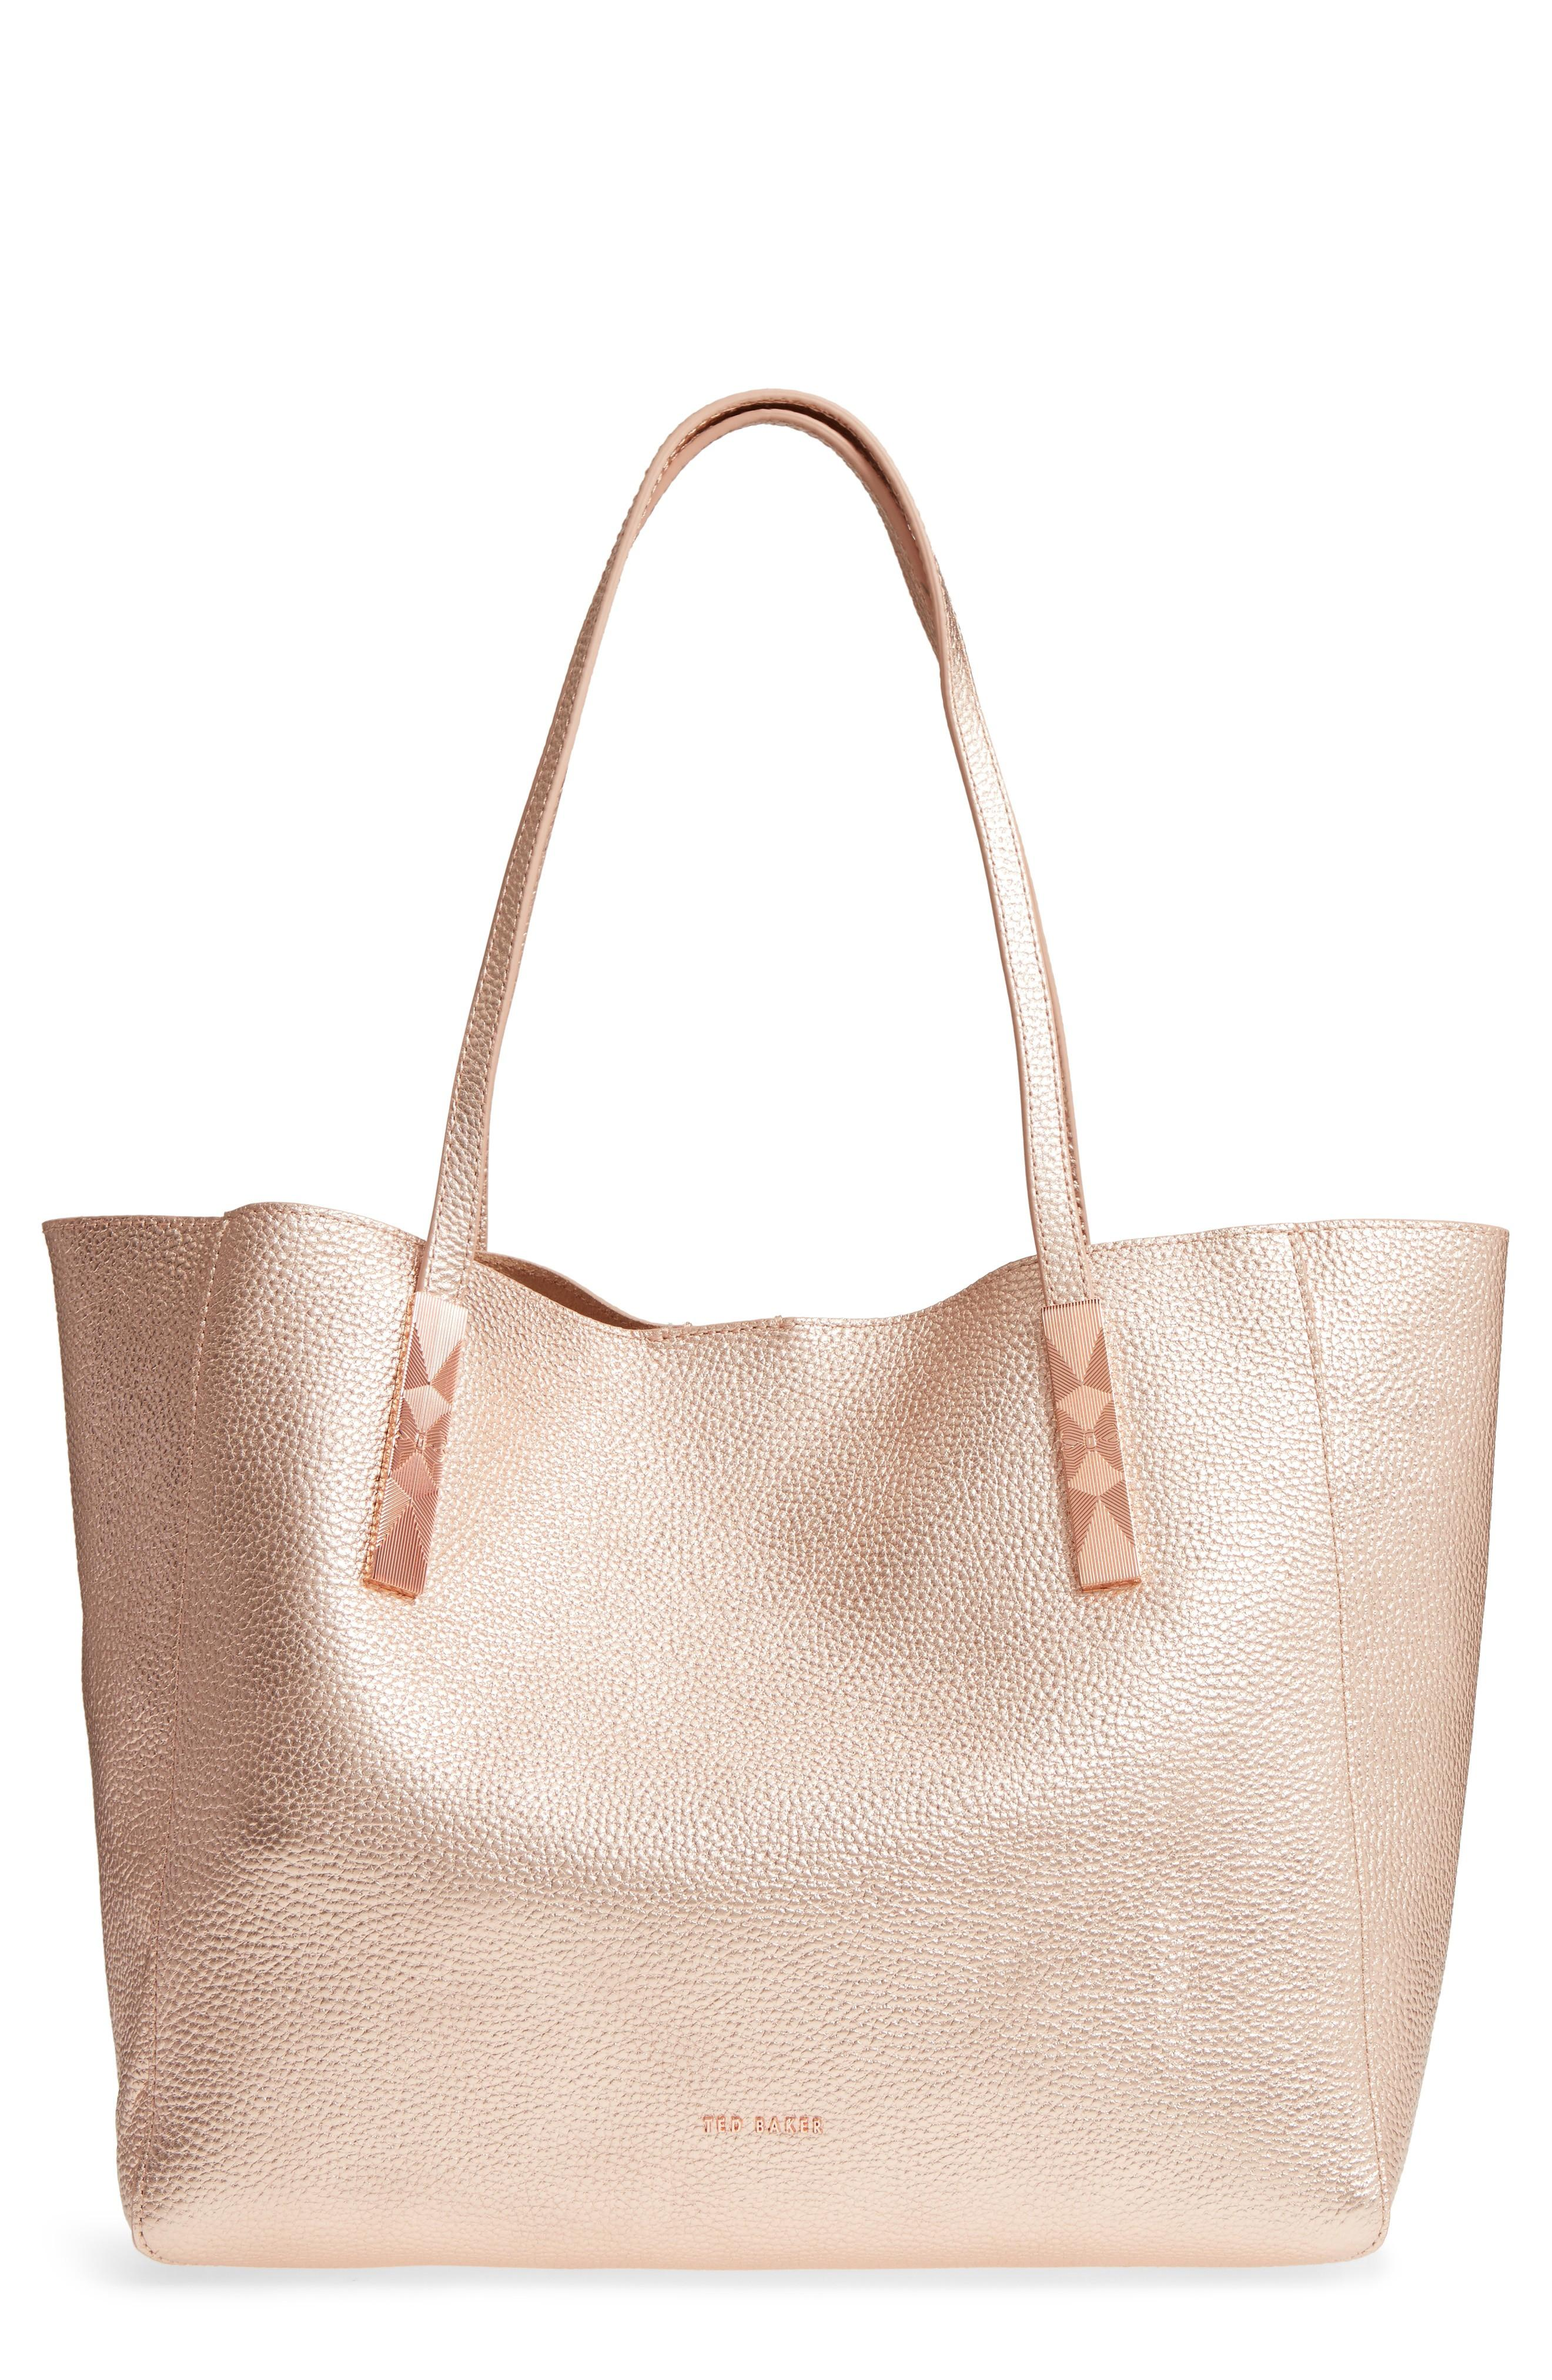 Ted Baker Pionila Leather Tote - Pink In Rose Gold